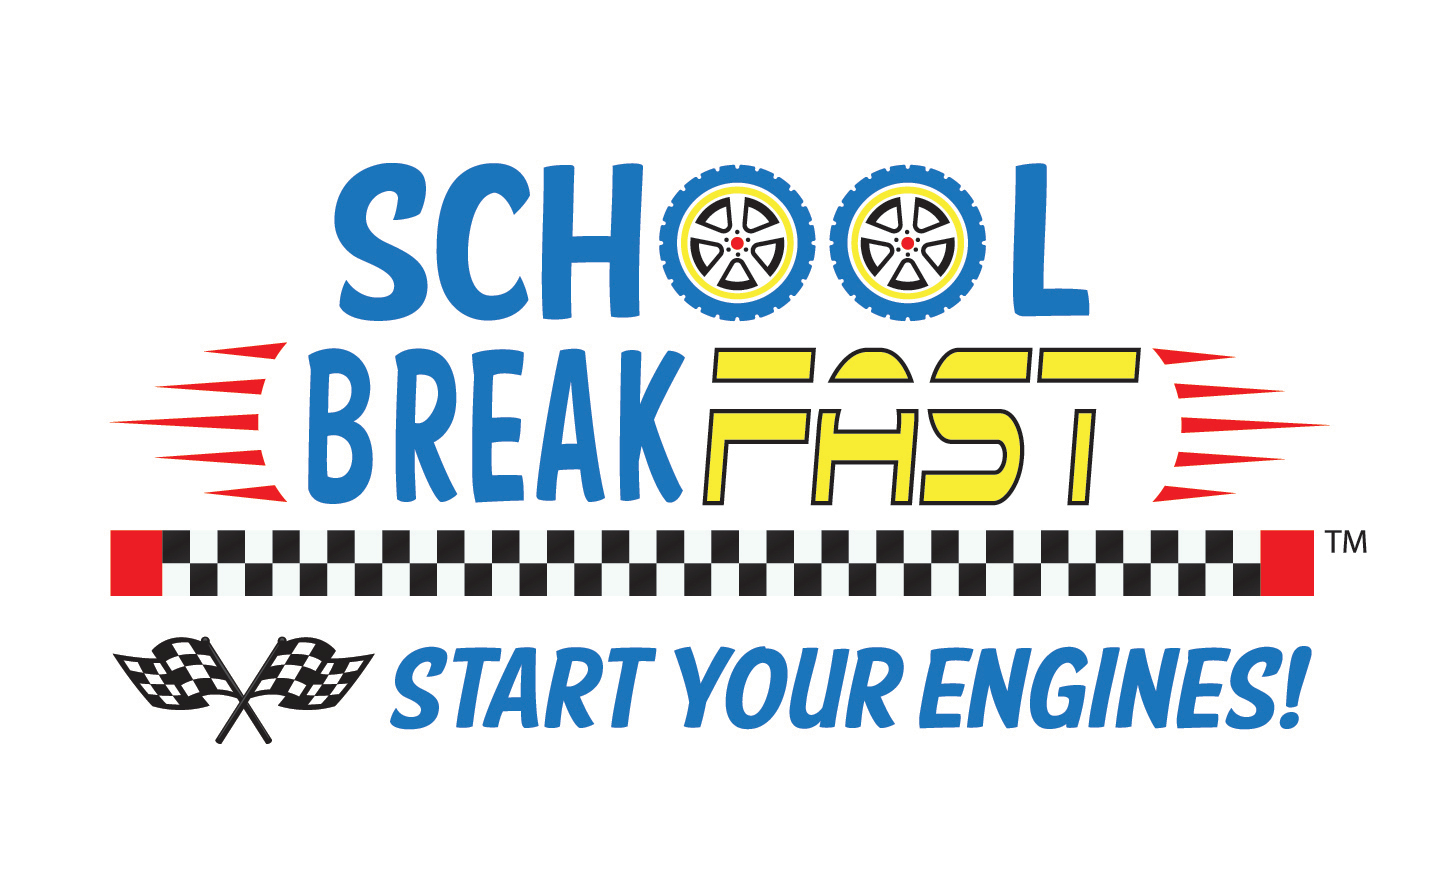 Celebrate National School Breakfast Week March 4-8